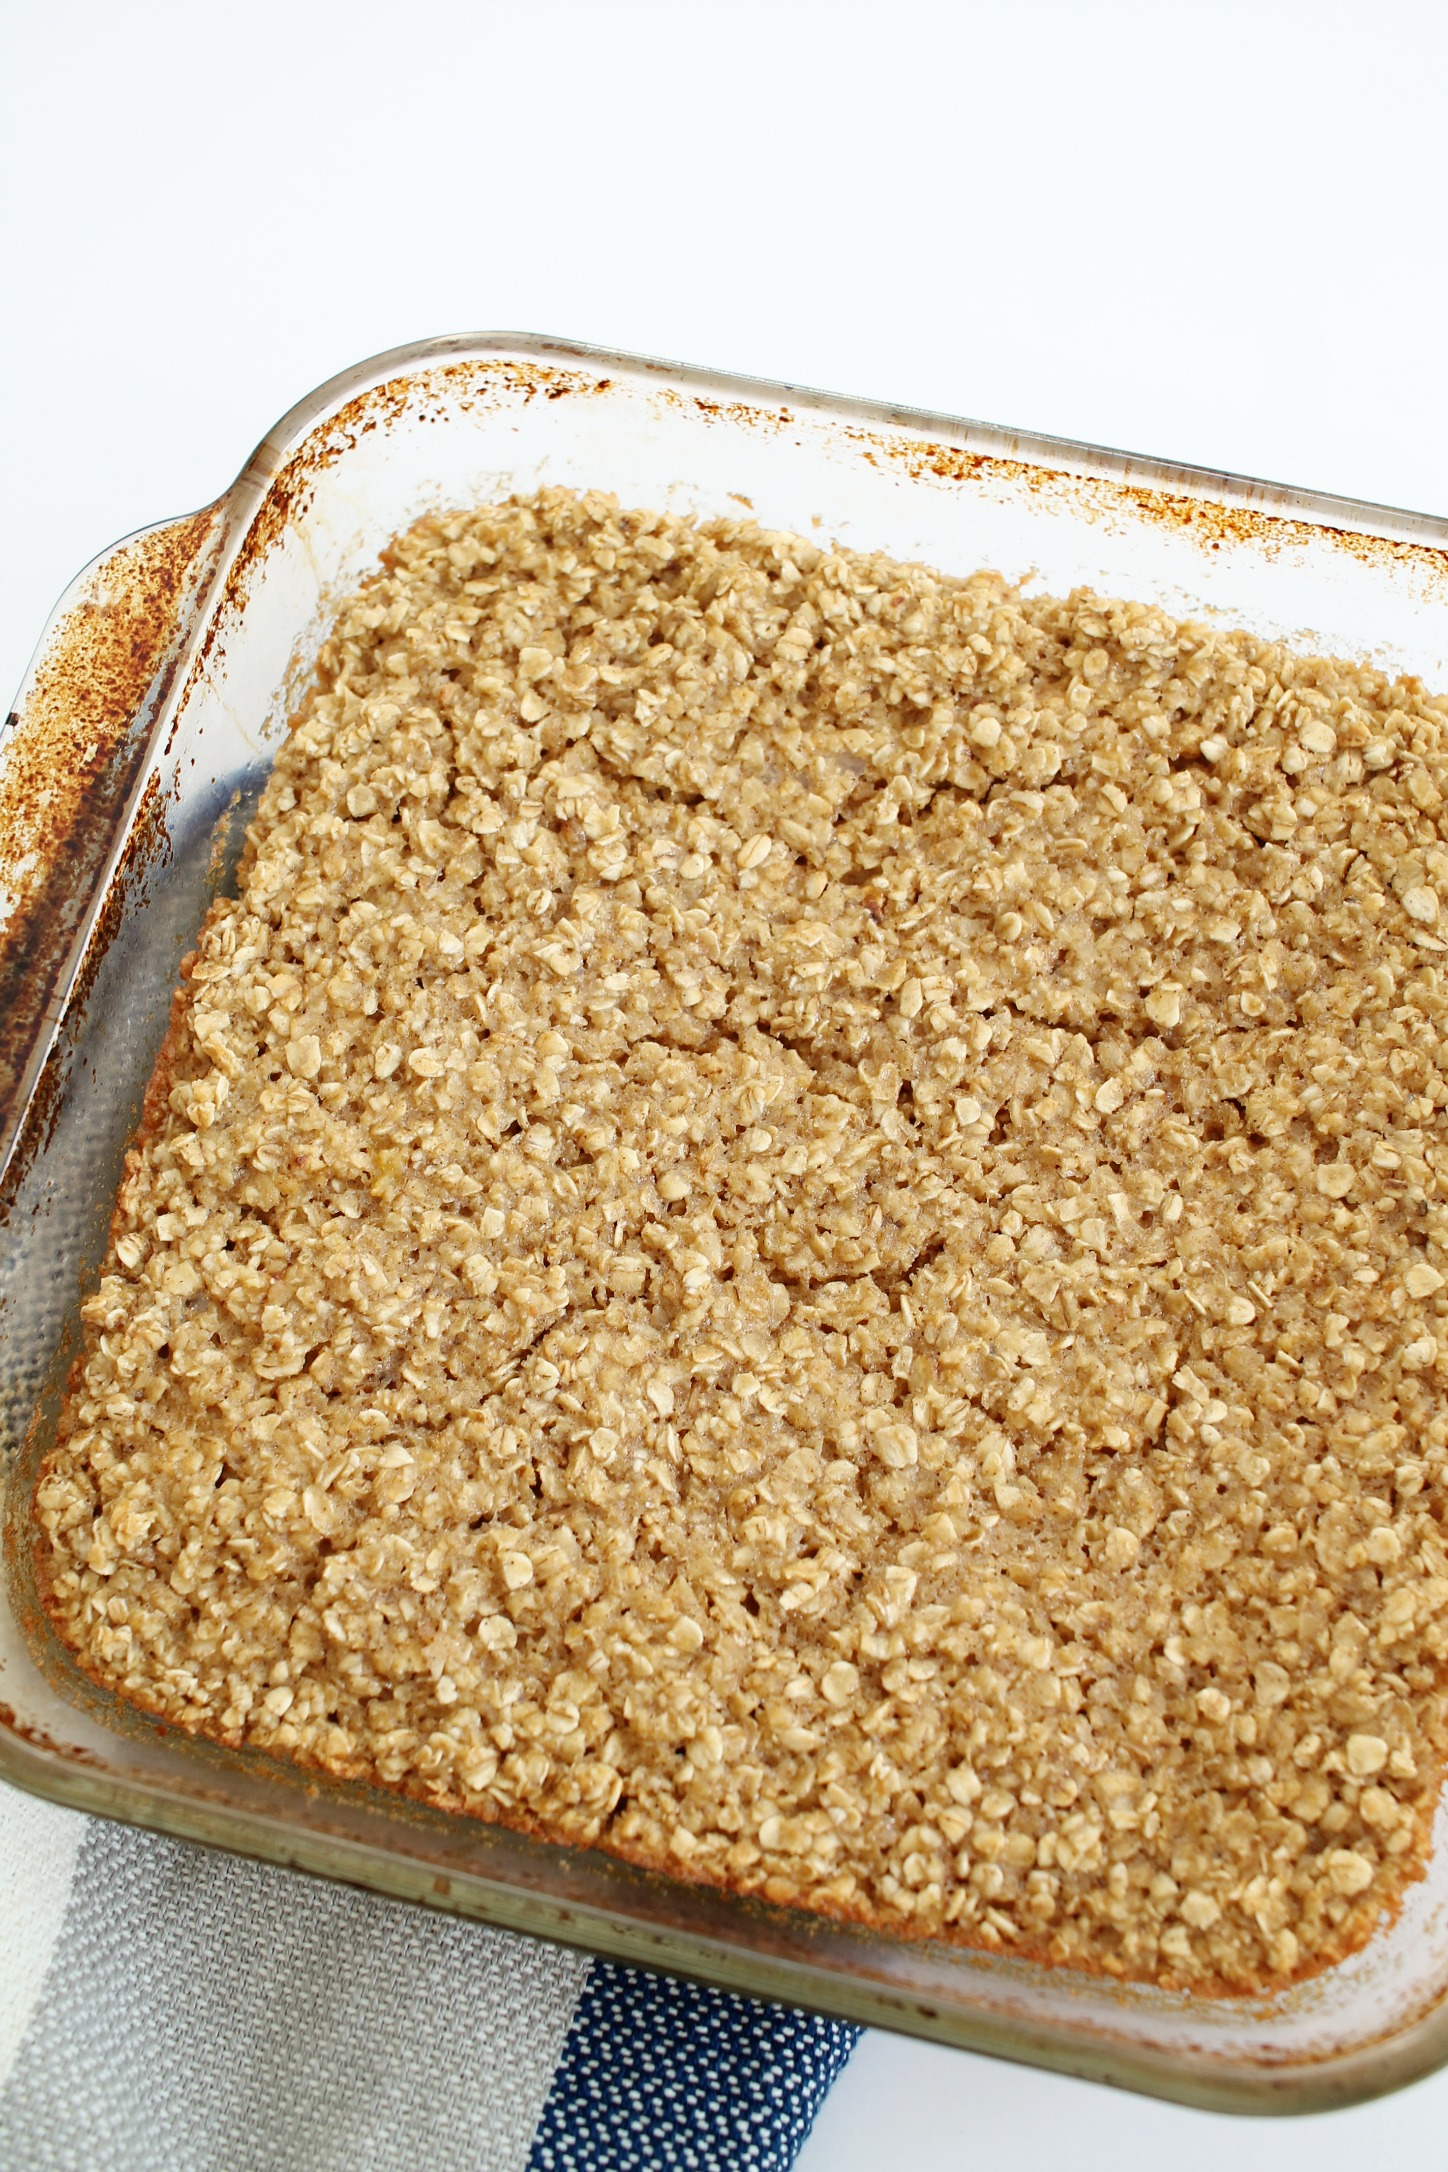 glass pan with baked oatmeal